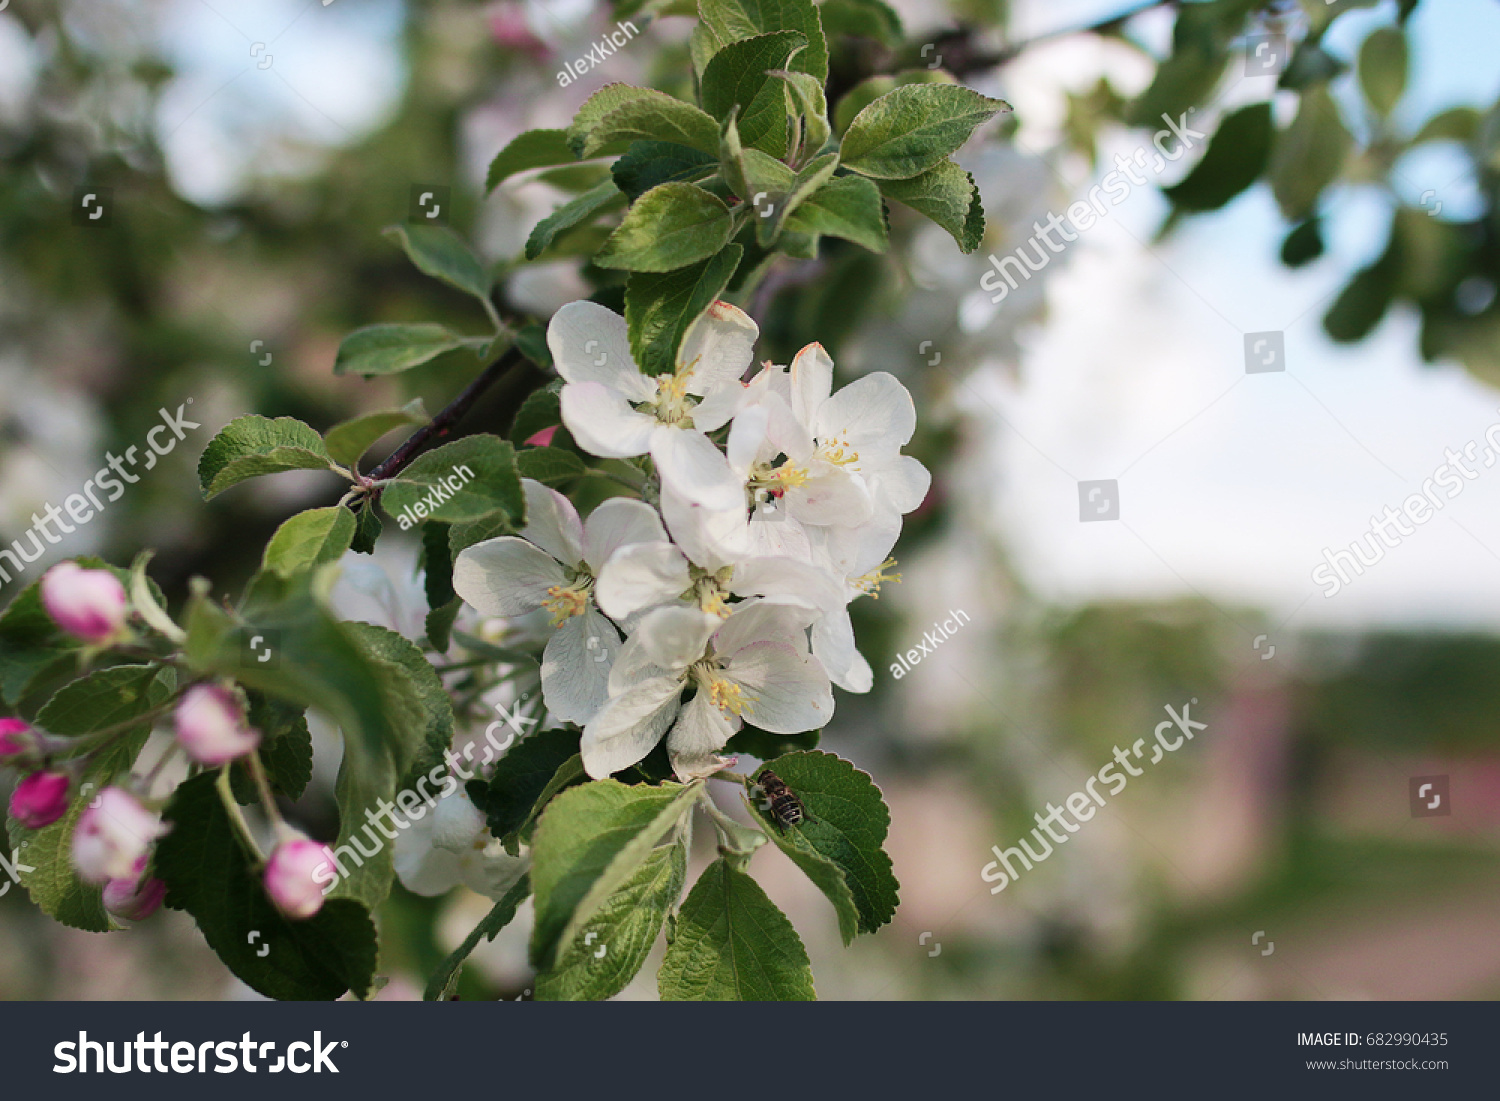 Early Spring The Flowering Apple Tree With Bright White Flowers Ez